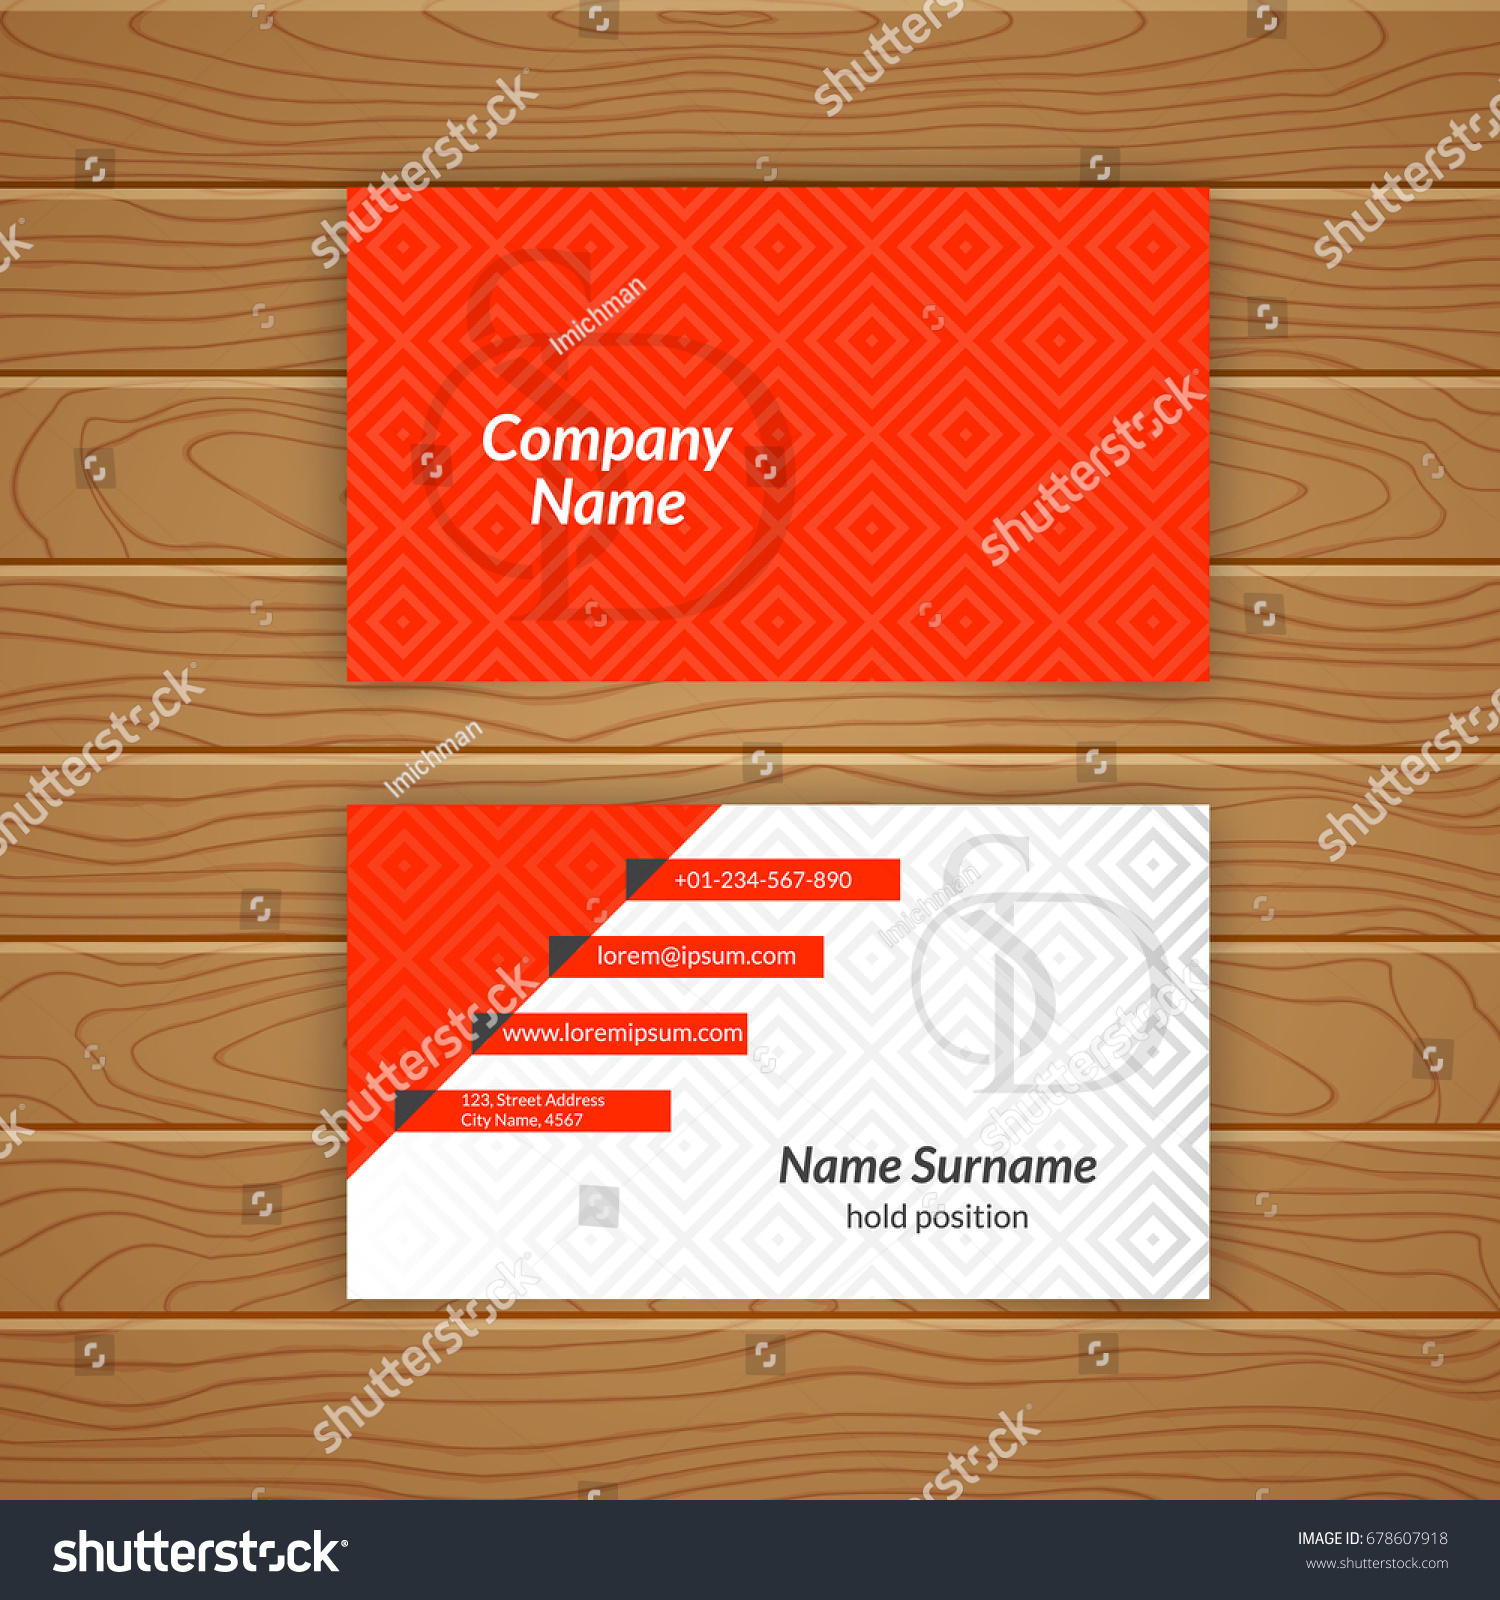 Business Card Blank Template Textured Background Stock Vector ...